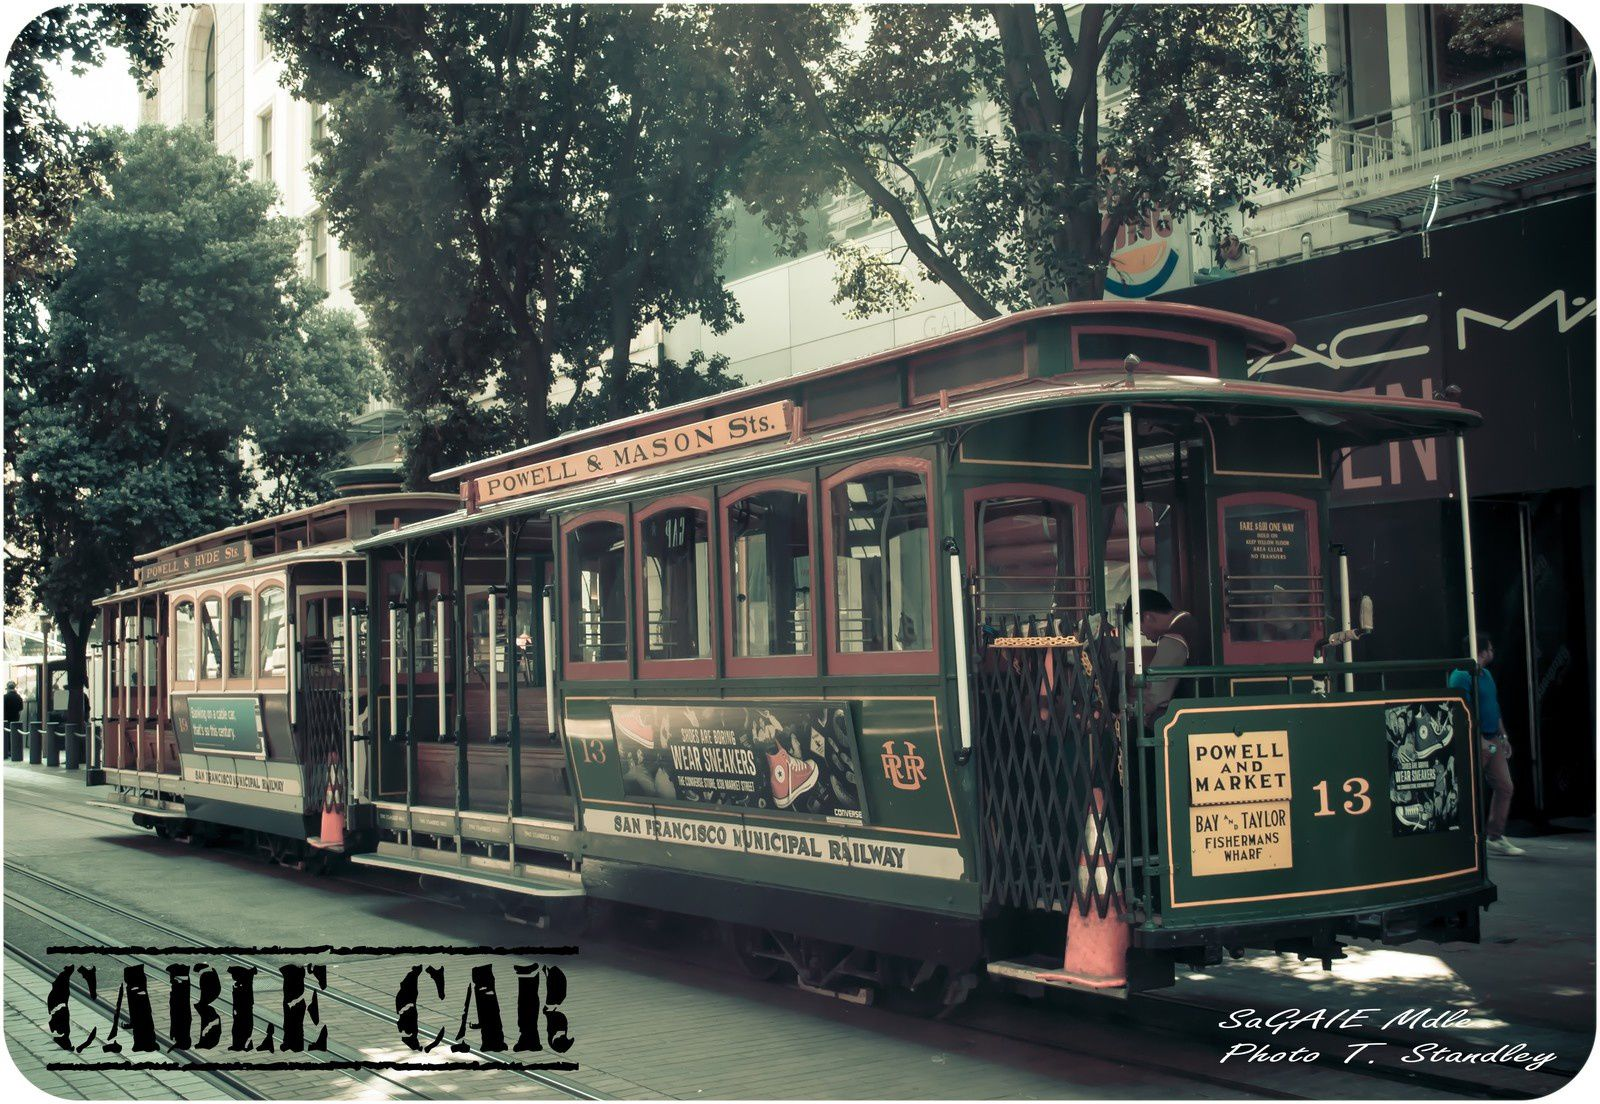 Cable Car.